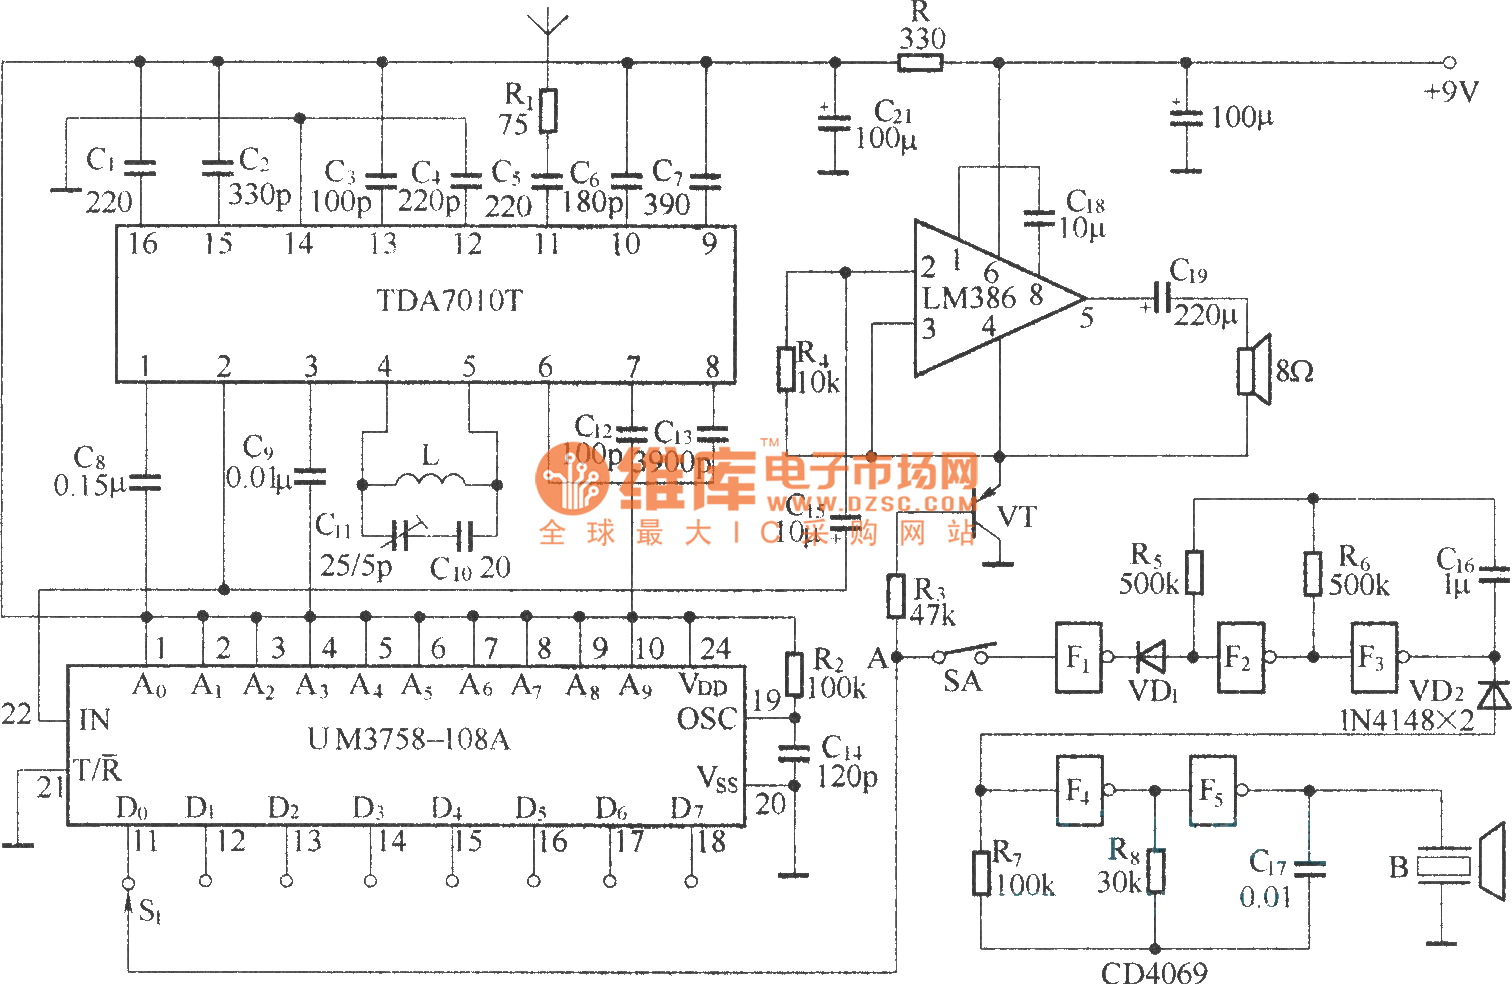 Small Wireless Call System Circuit Diagram Ba1401 Tda7010t Mosfetdipmeter Measuringandtestcircuit